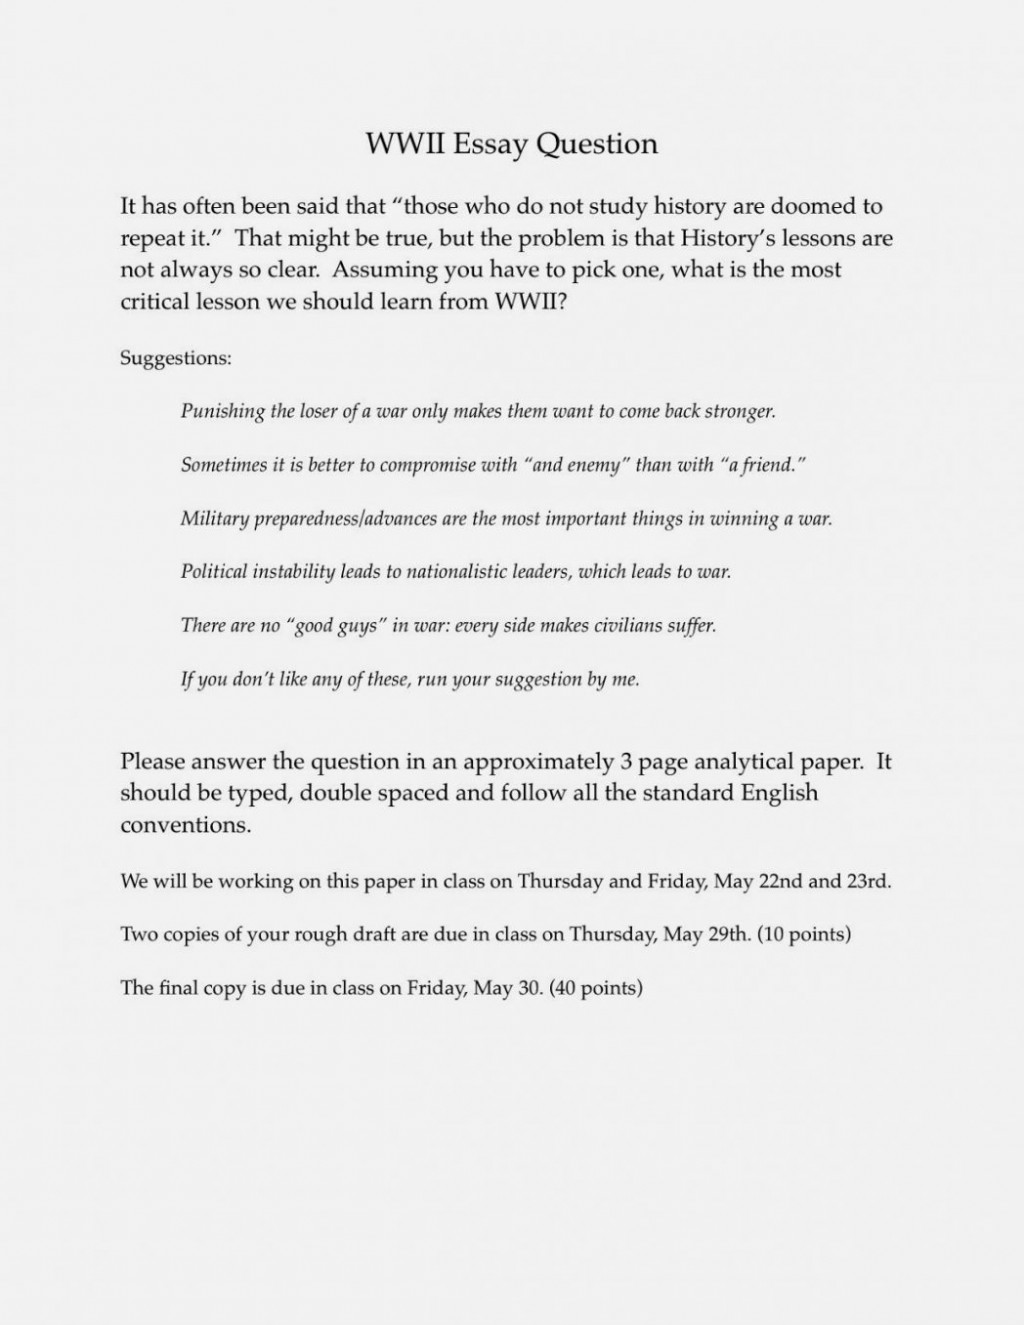 002 History Of Basketball Essay Essaycover Letter Template For Tsi Writing Scores Wwiies Prompts 1048x1357 Wondrous In English Hindi Examples Large